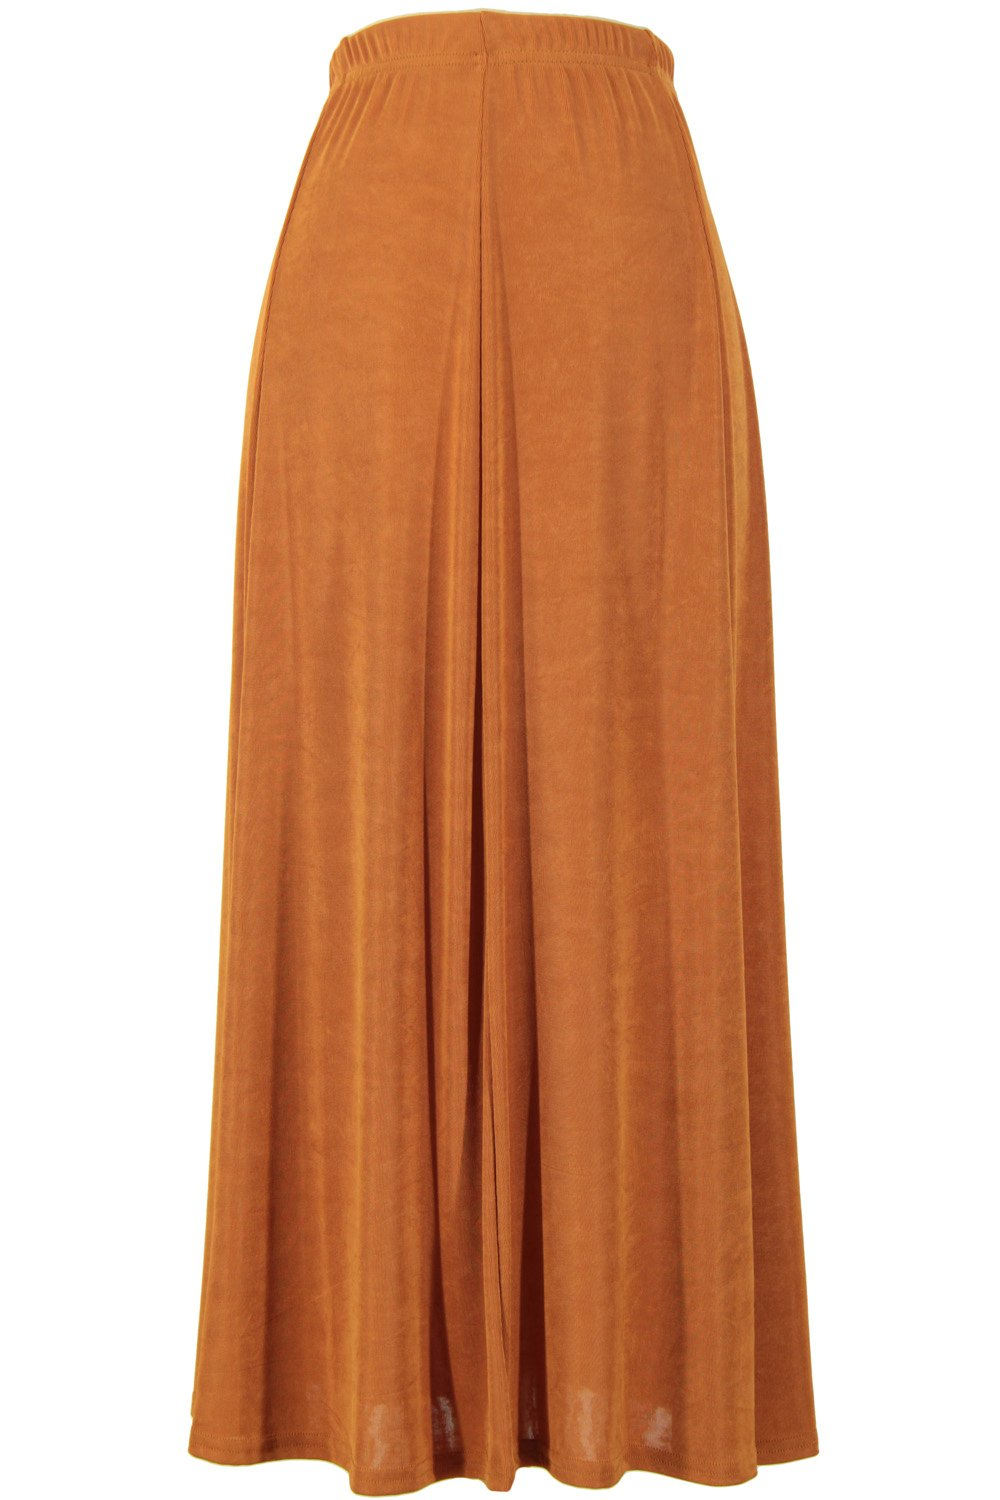 Jostar Acetate Flared Skirt in Rust Color in Large Size